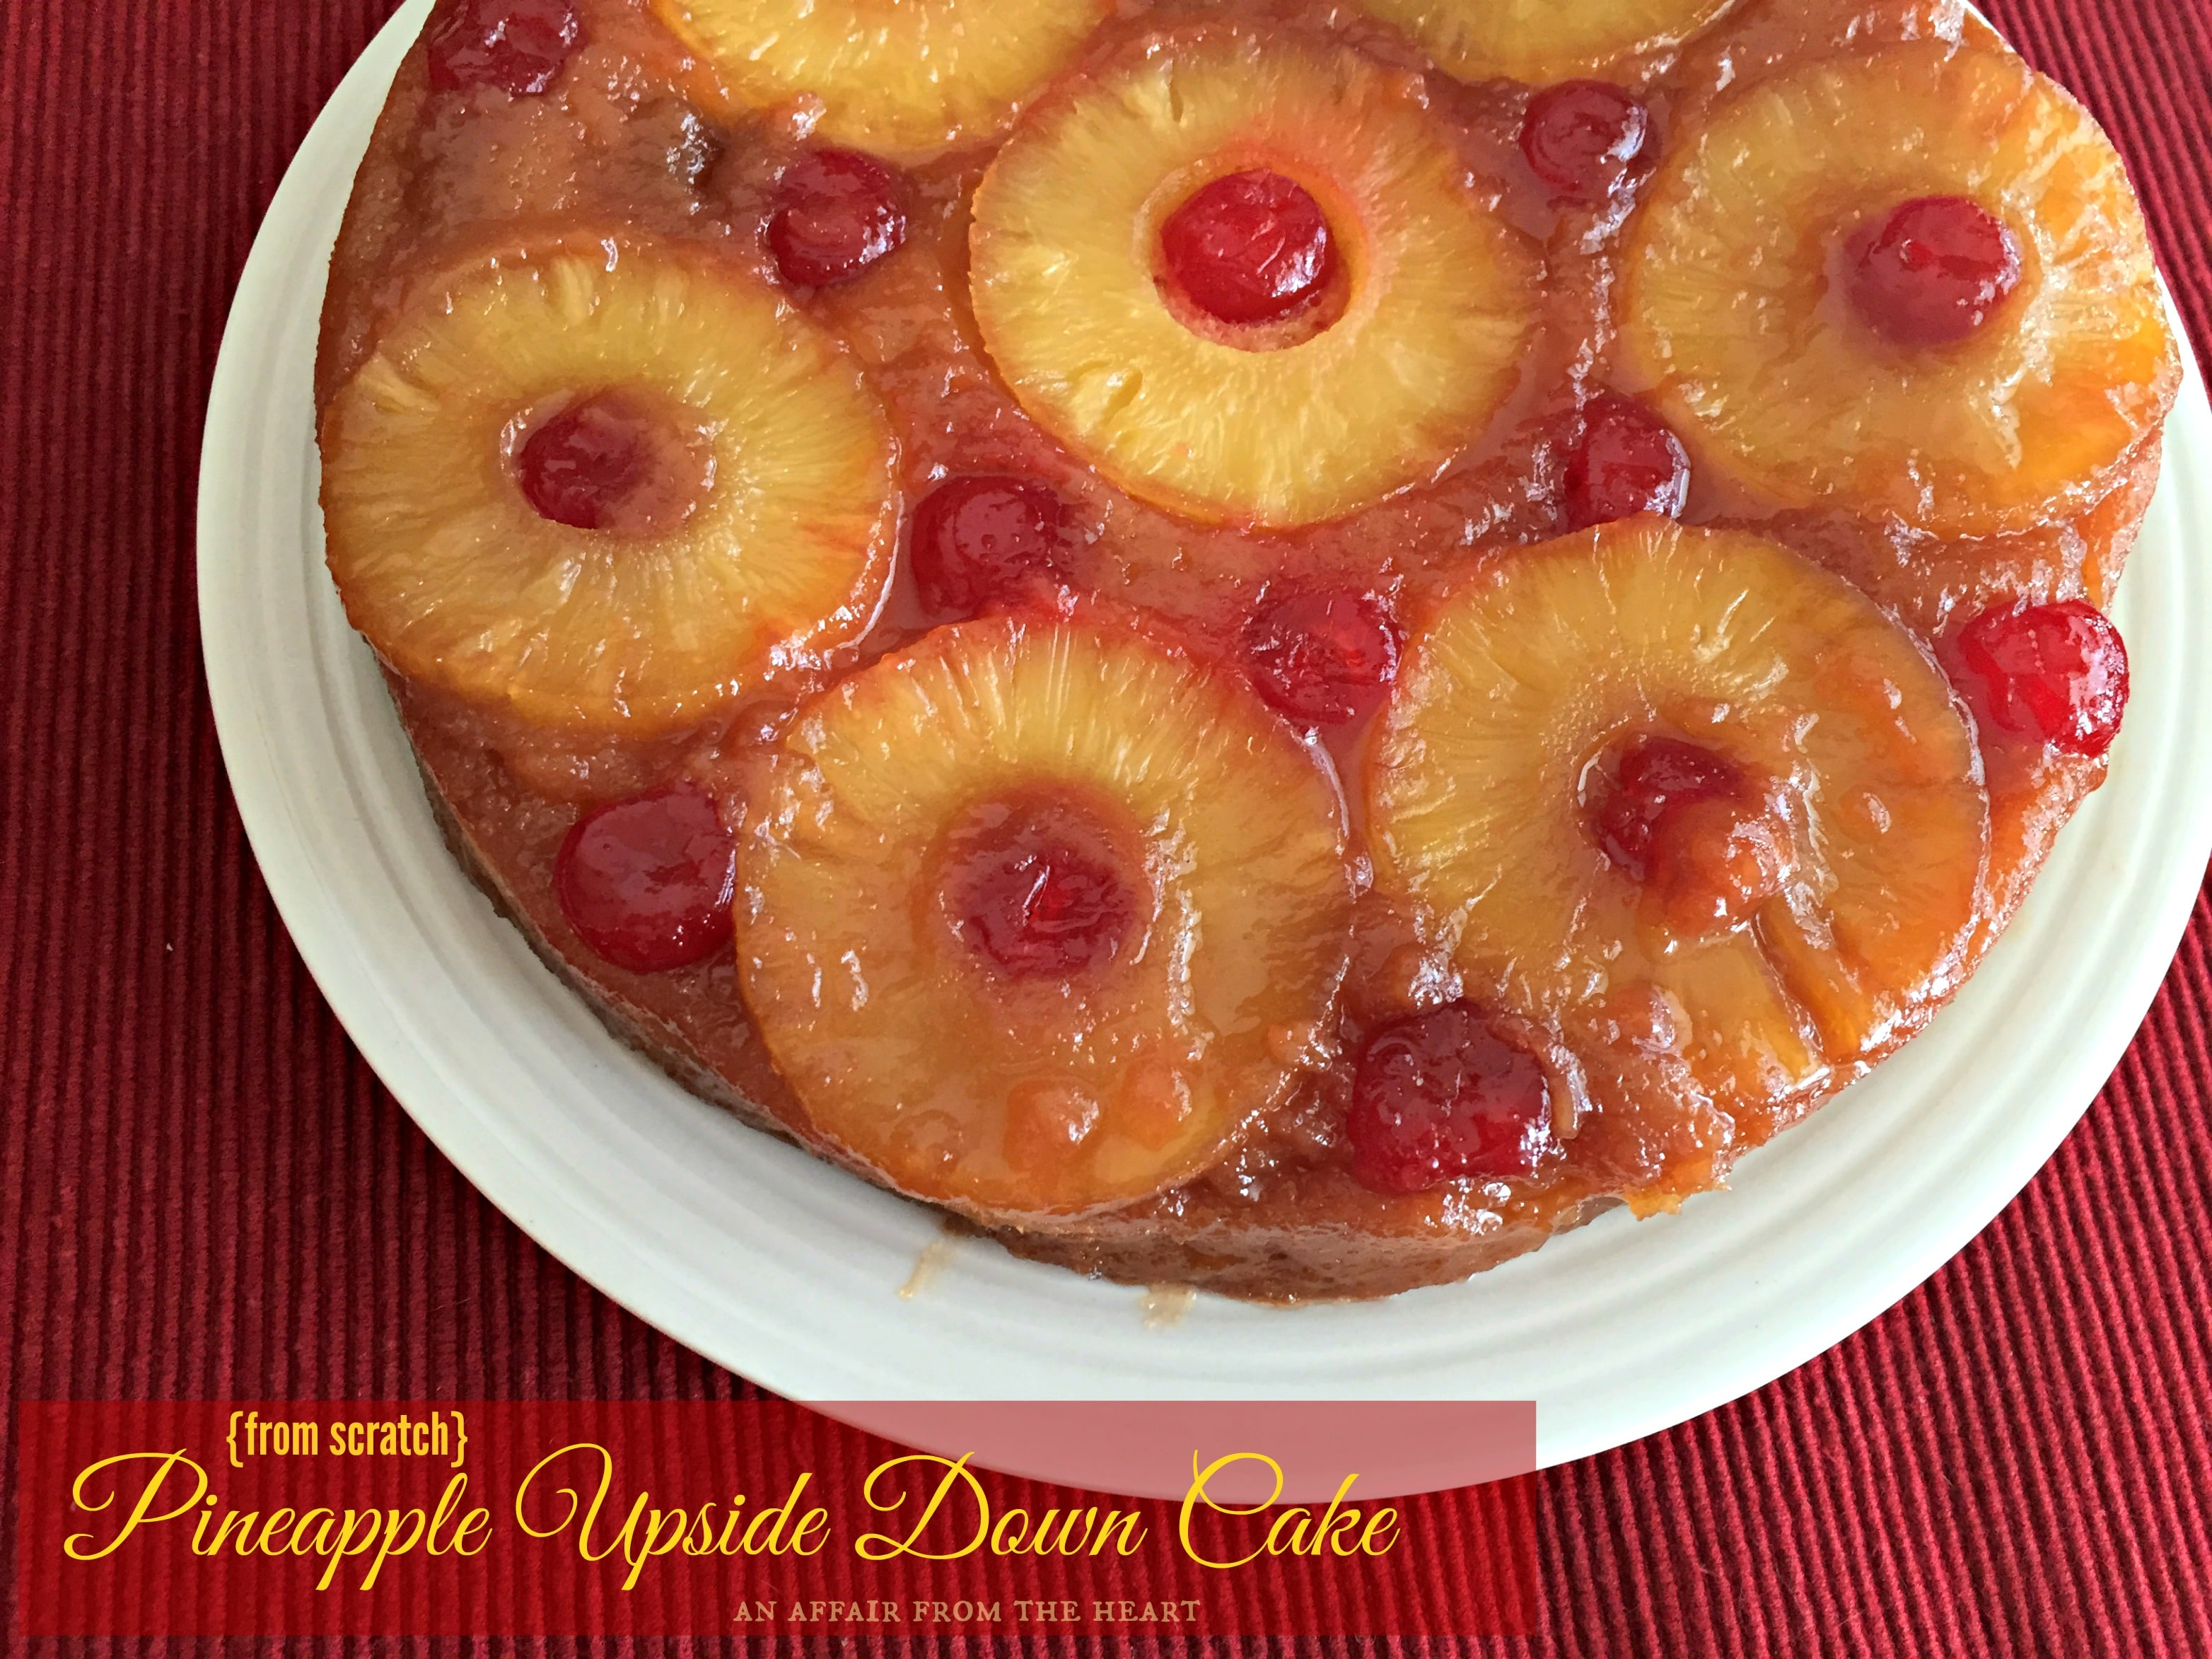 Upside Down Pineapple Cake Mary Berry